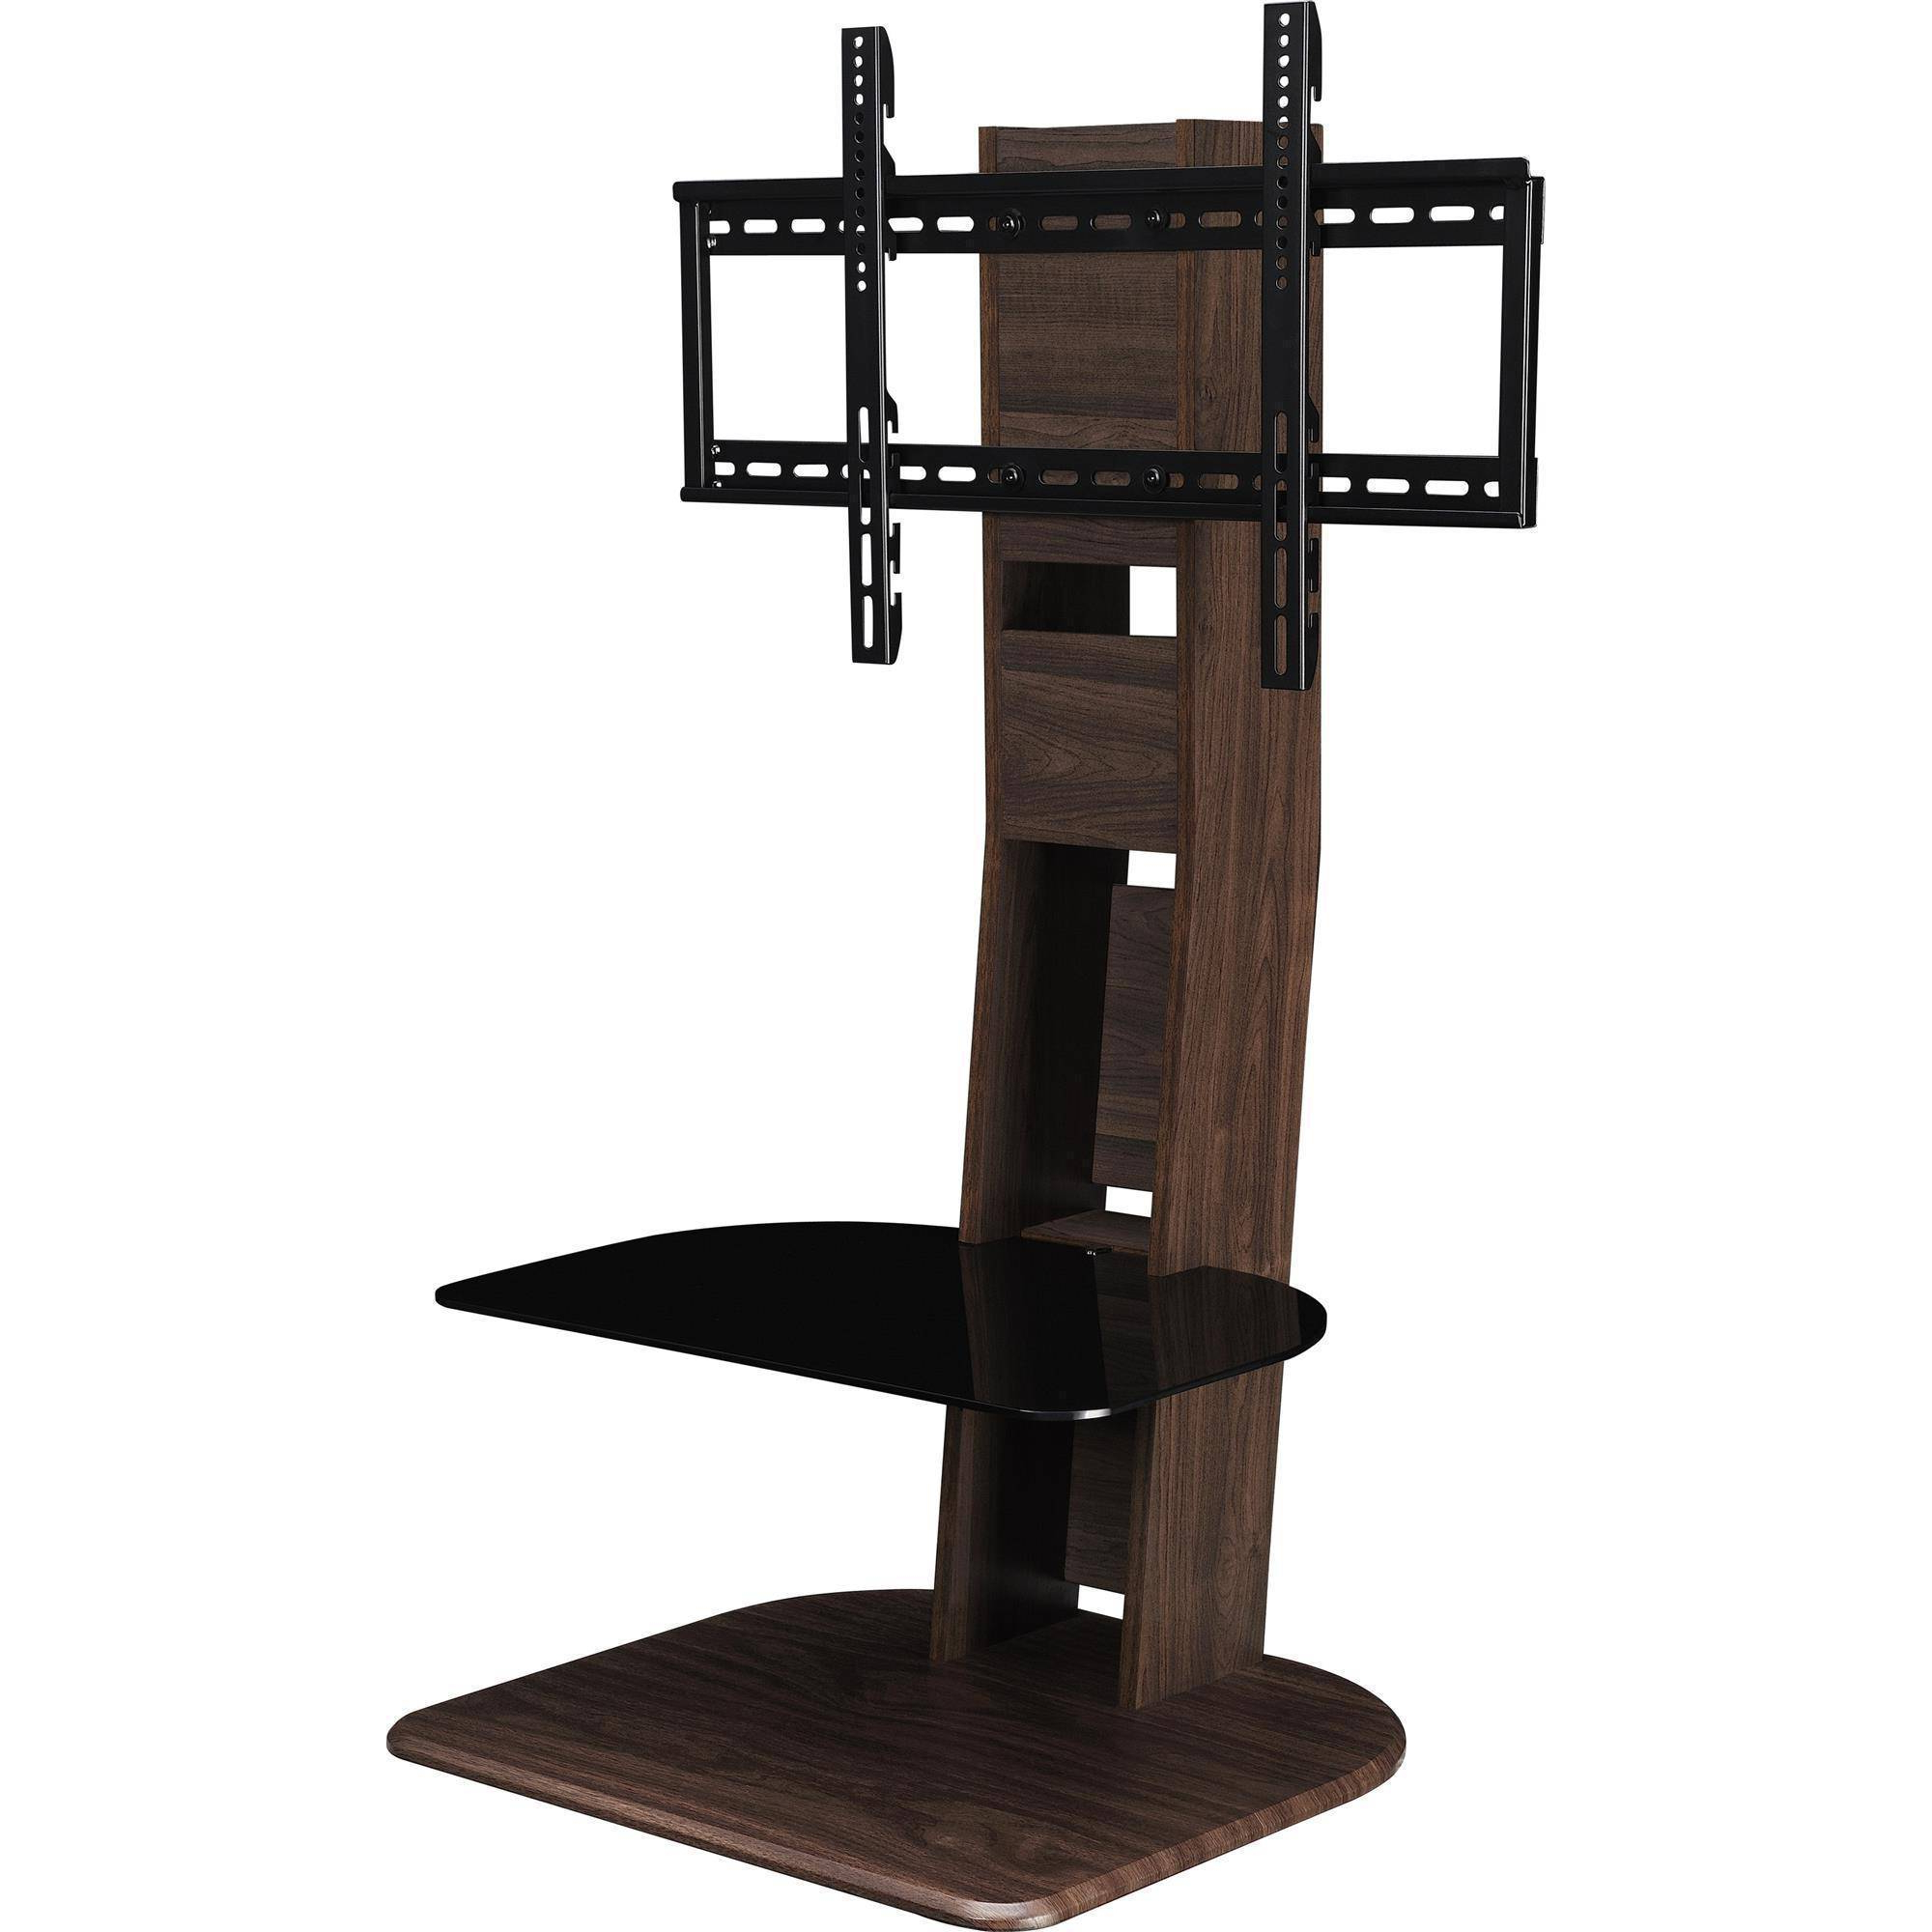 Tall Tv Stands For Flat Screens Stand Bedroom With Storage 55 Inch Inside Trendy Tall Tv Stands For Flat Screen (View 17 of 20)